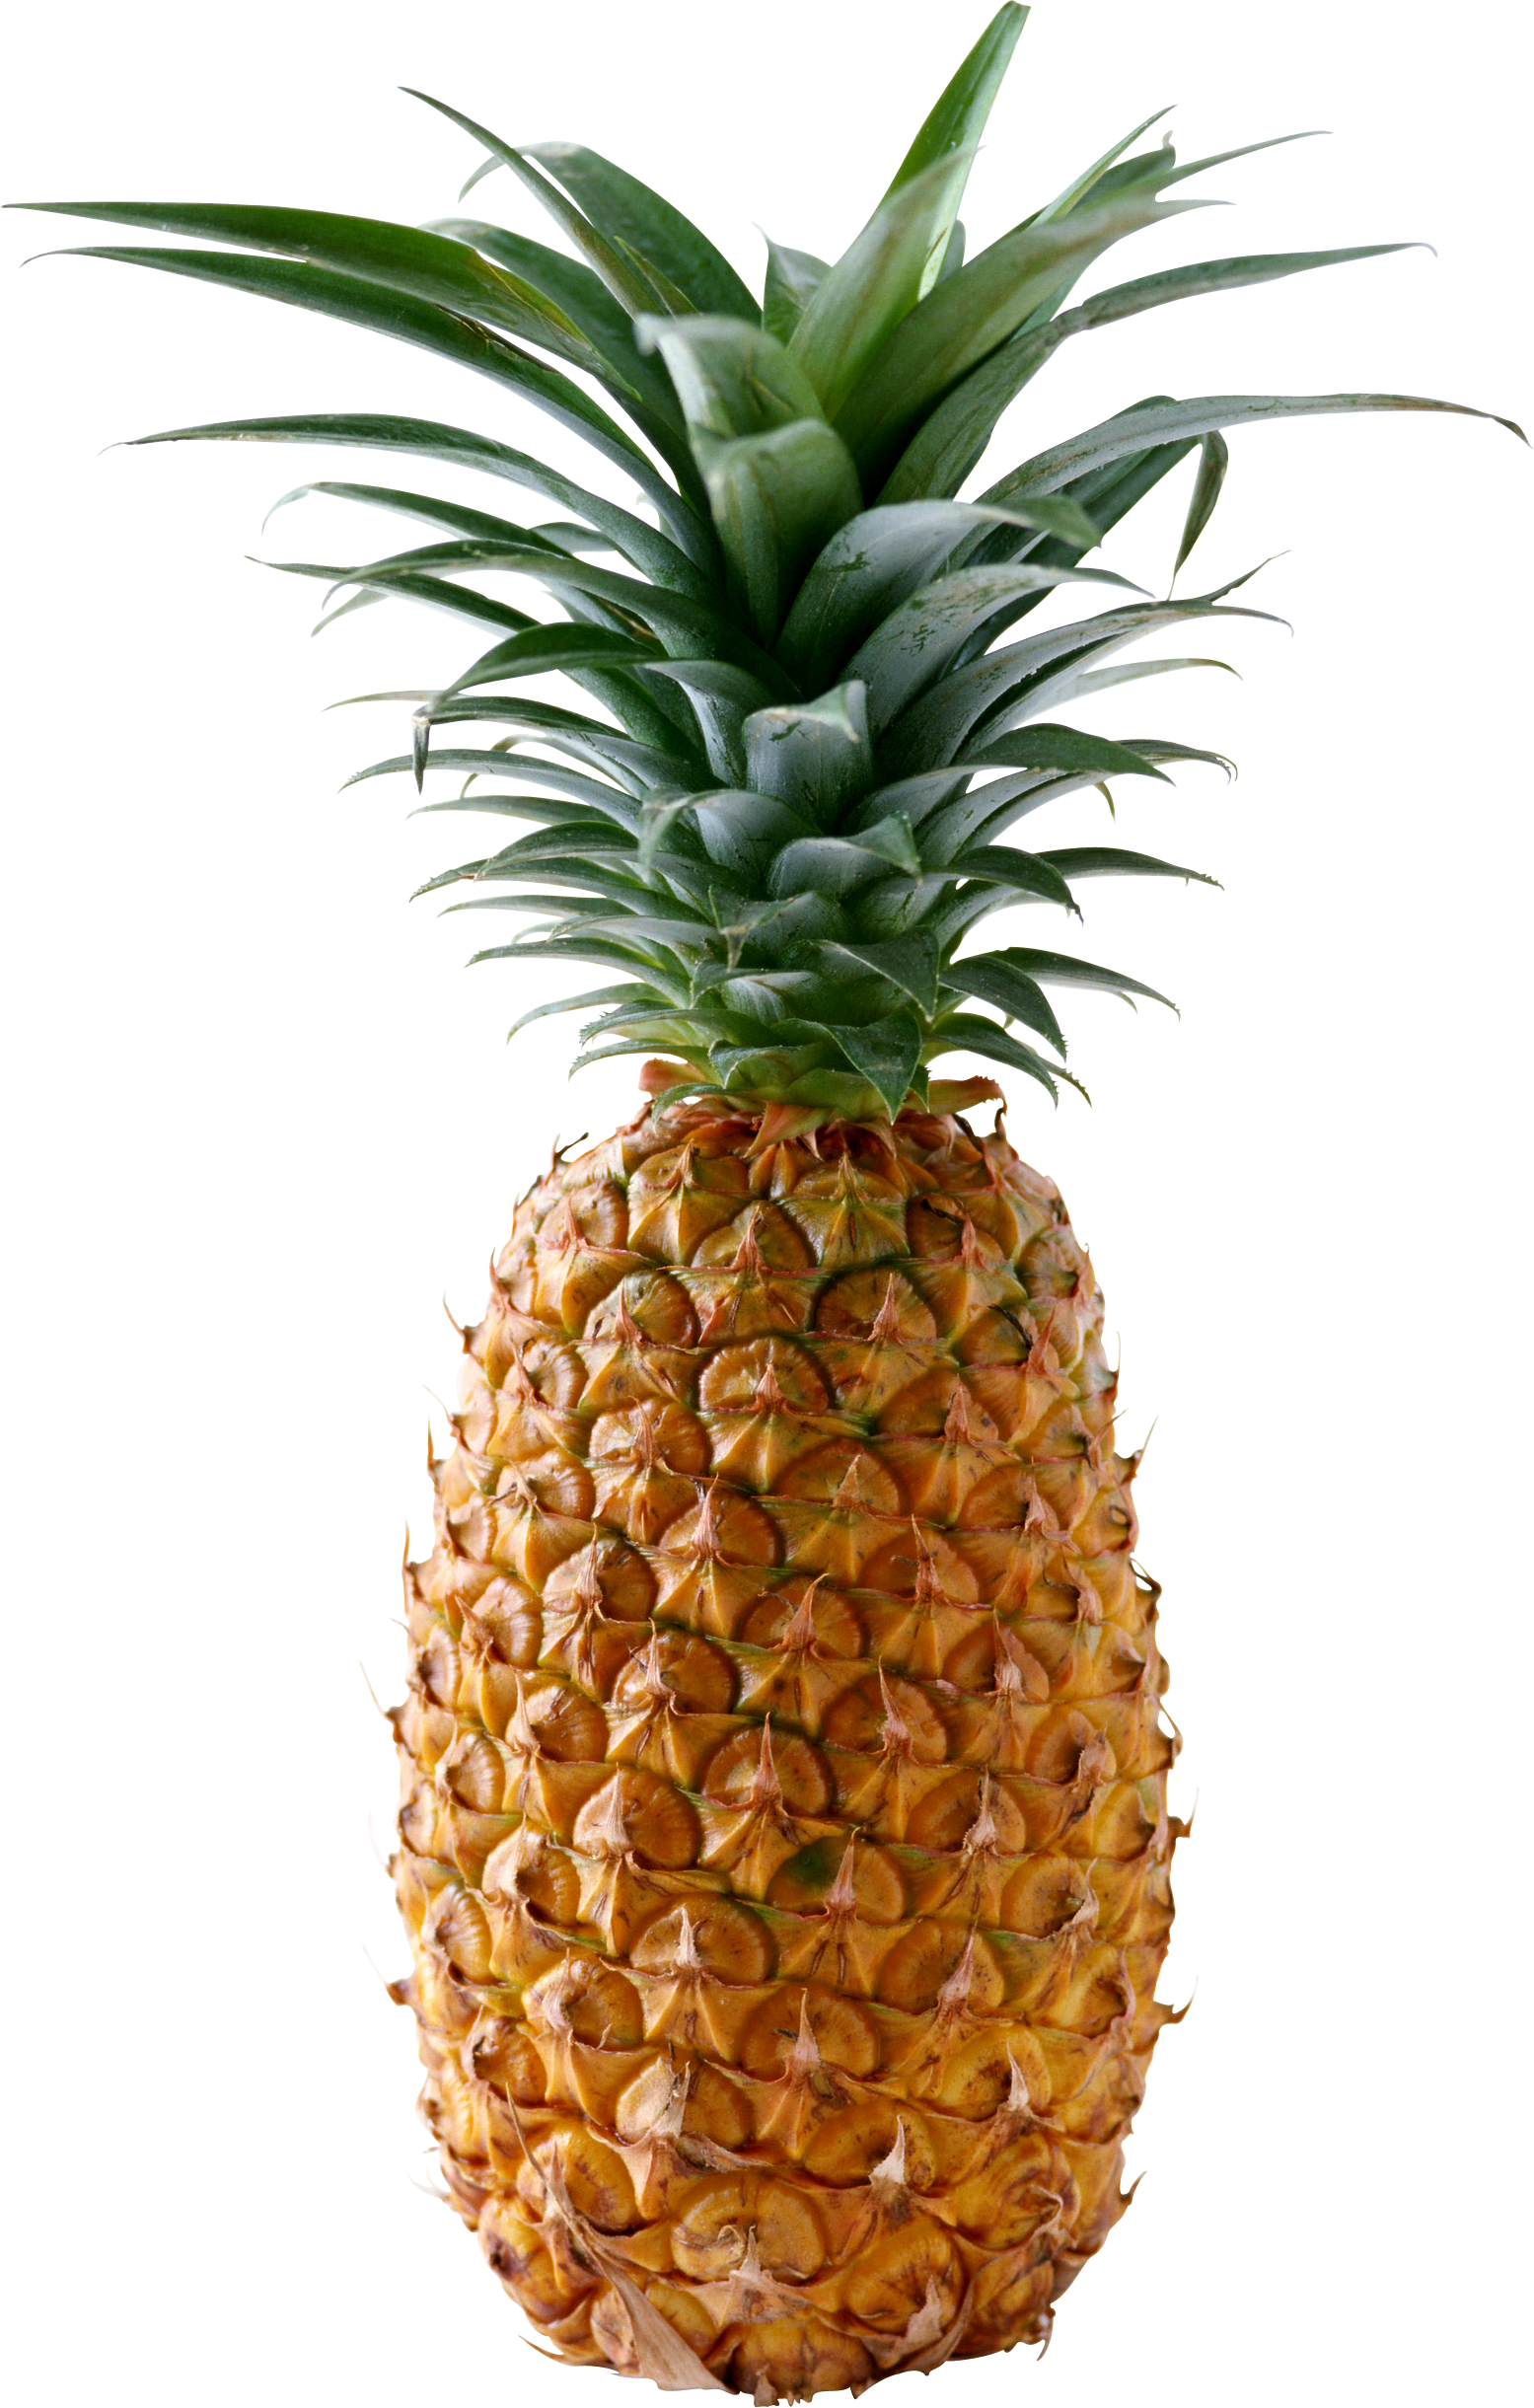 Pineapple PNG image, free download - Pineapple PNG